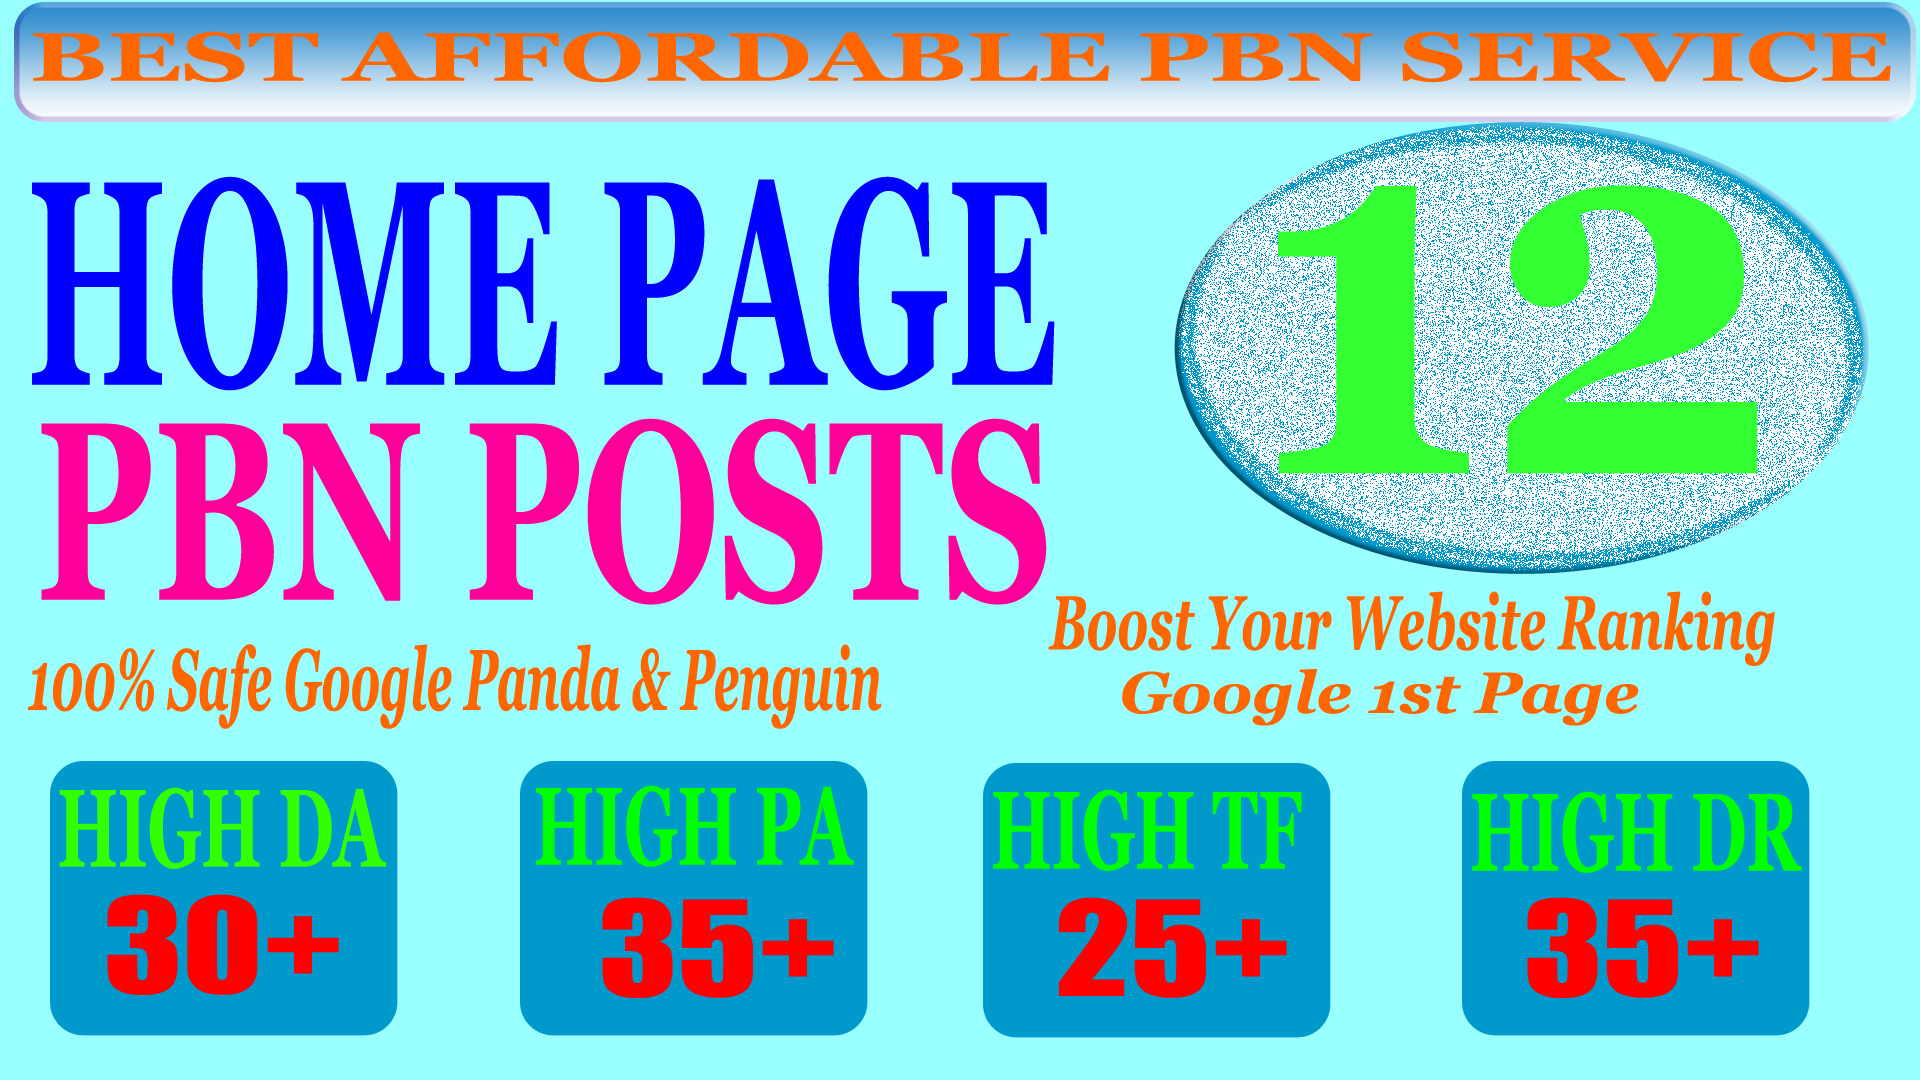 12 Homepage PBN Post with High DA PA CF TF (25+) Moz Authority Expired domain Backlinks